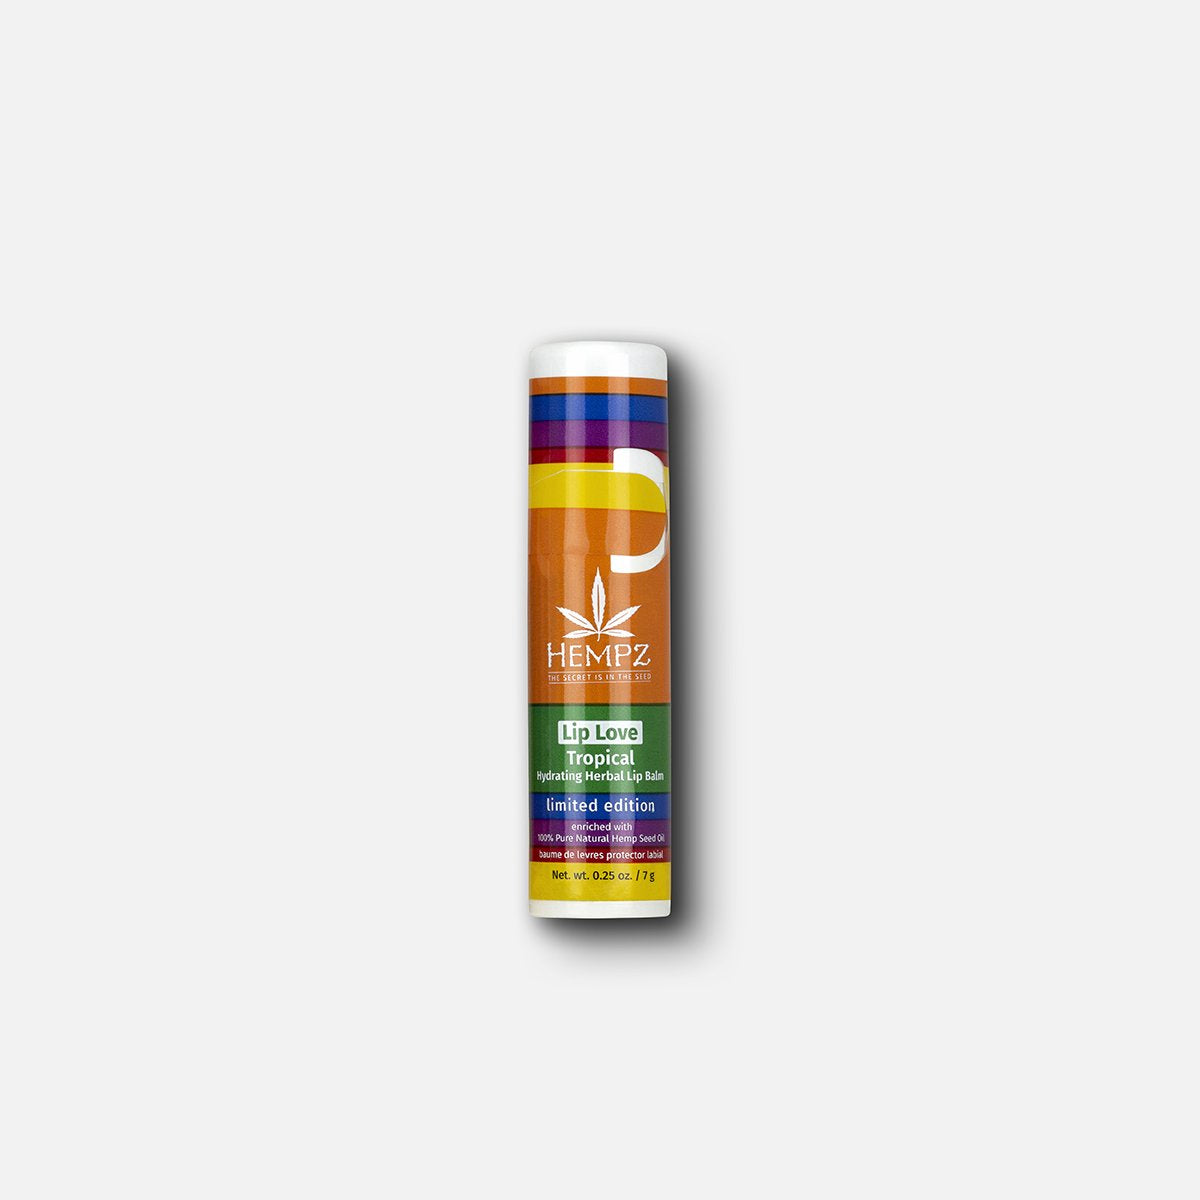 Hempz Limited Edition Lip Love Herbal Lip Balm